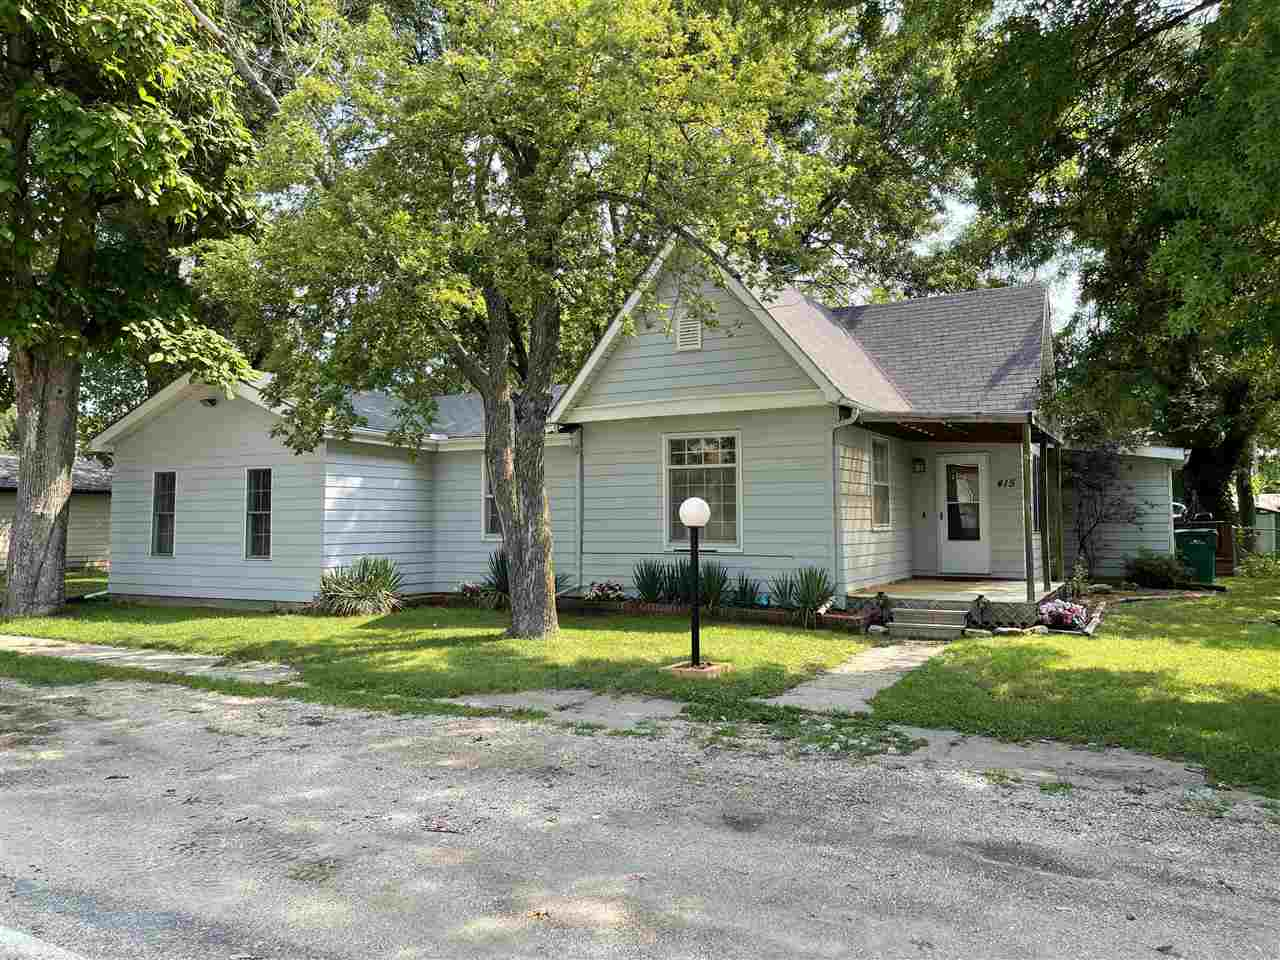 Great location with easy access to Topeka, Manhattan, or Junction City. This home flows well with 4 bedrooms, living room, dining room kitchen, sun room, and 2 bathrooms. Plenty of room. Outside you will find 2 decks to relax and unwind. Fenced in back yard, 30 x 28  garage with heat/air, and extra parking. Call today to setup your personal showing.